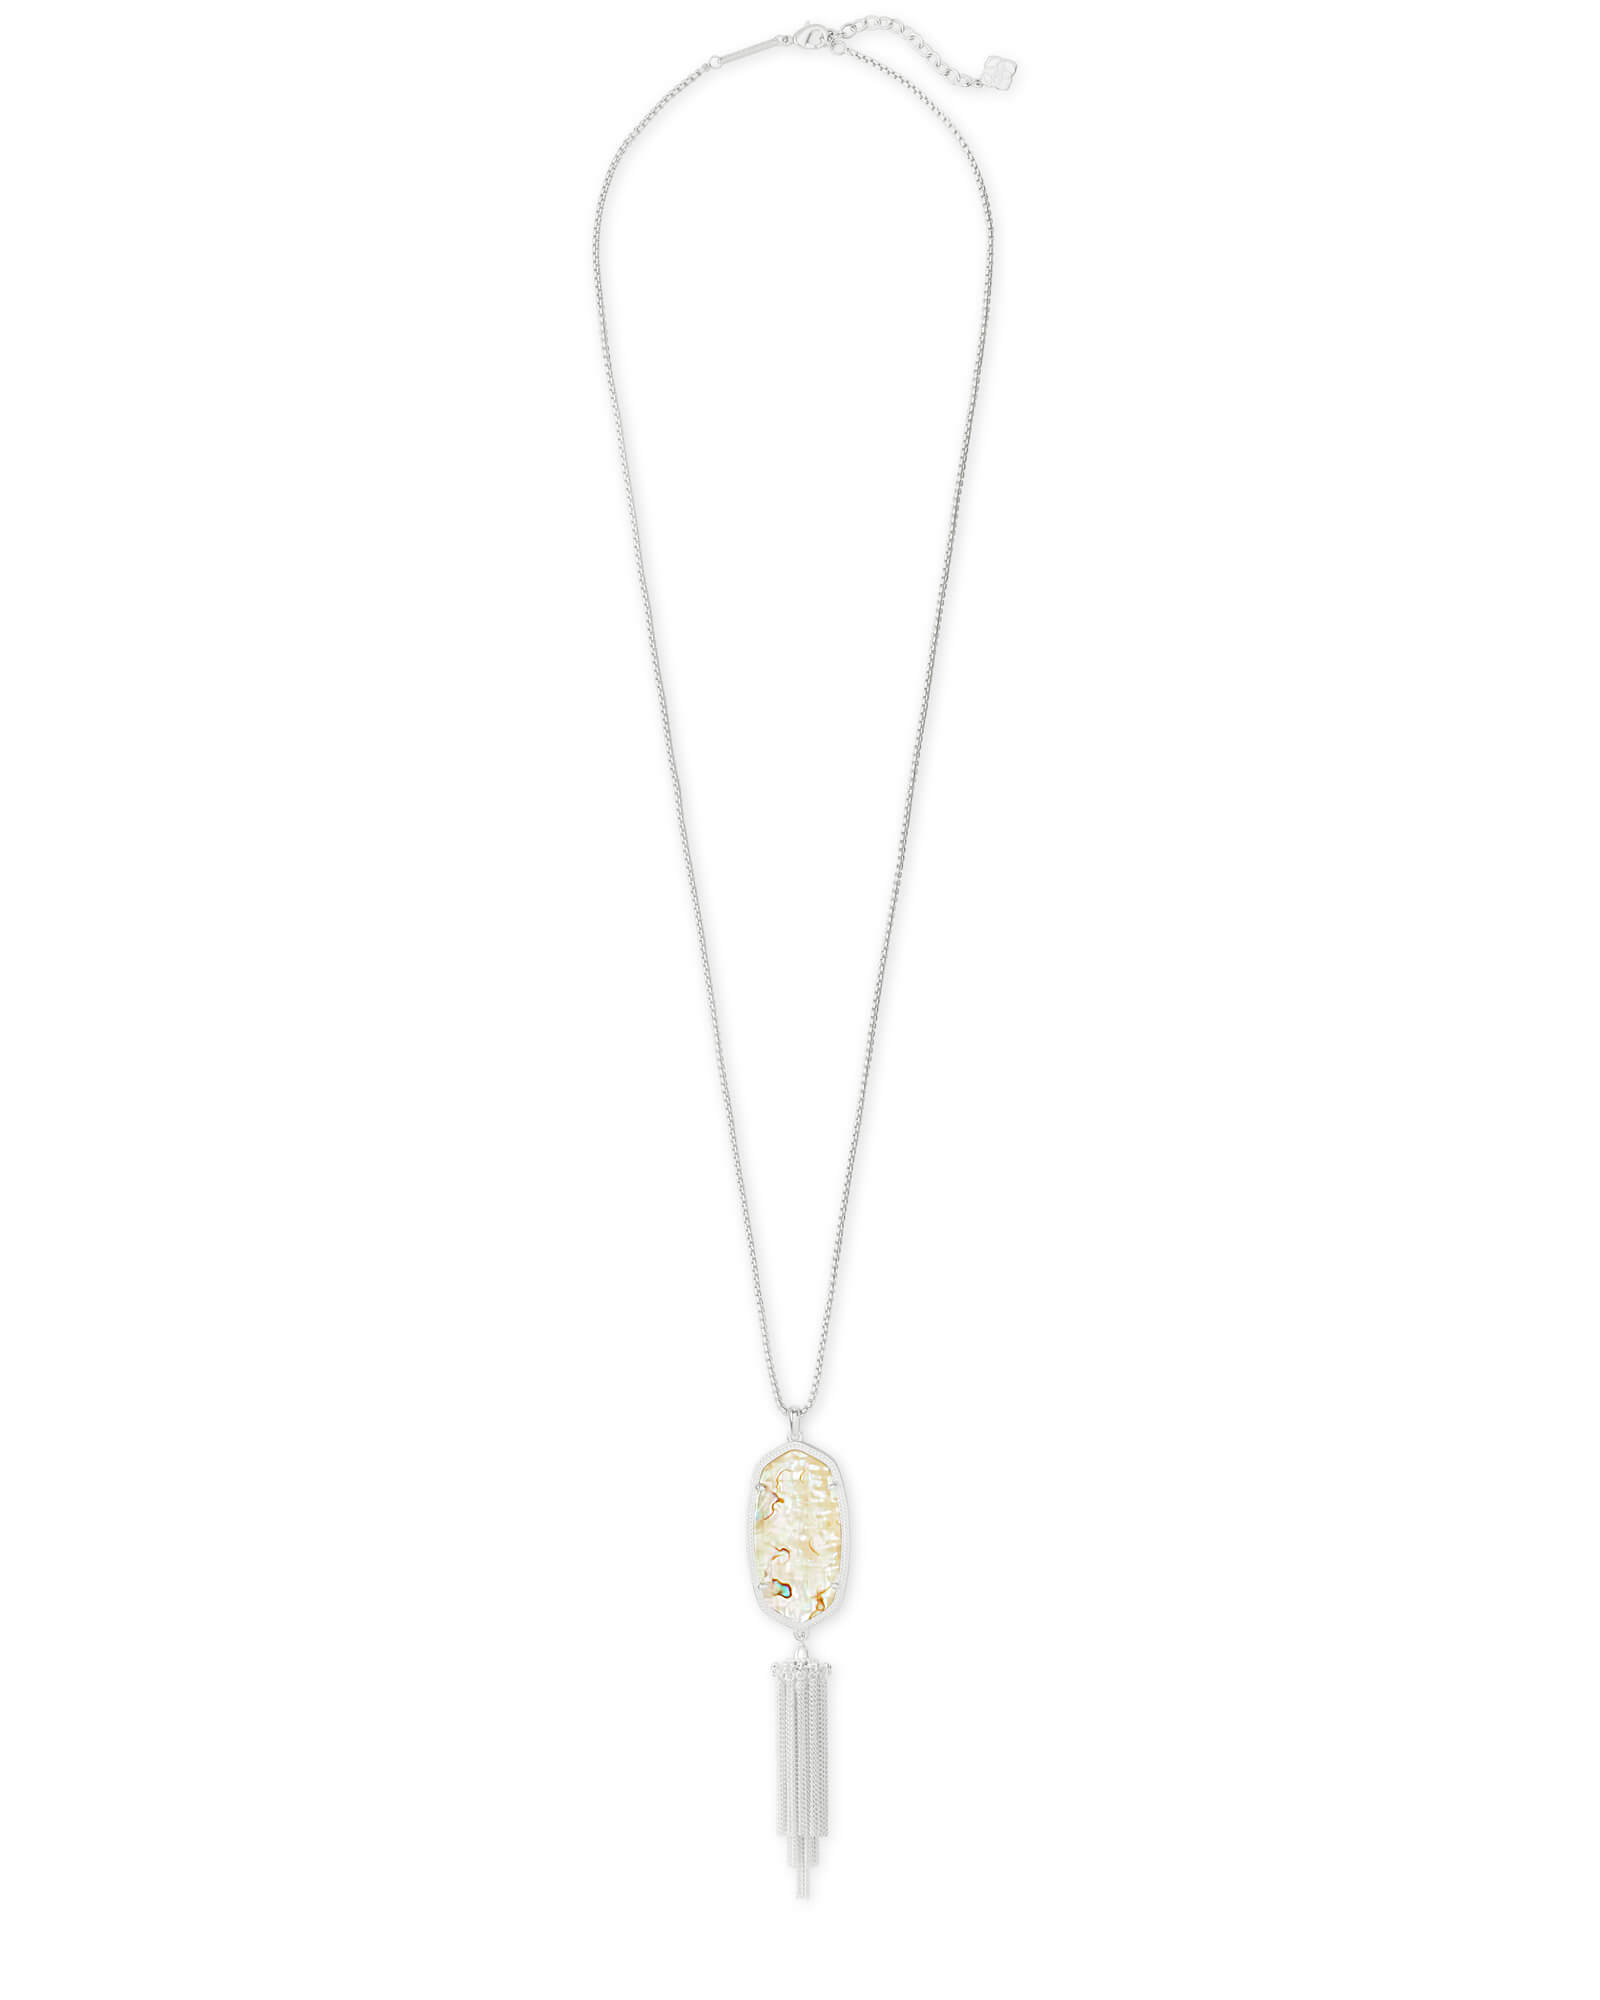 Rayne Bright Silver Large Long Pendant Necklace in White Abalone